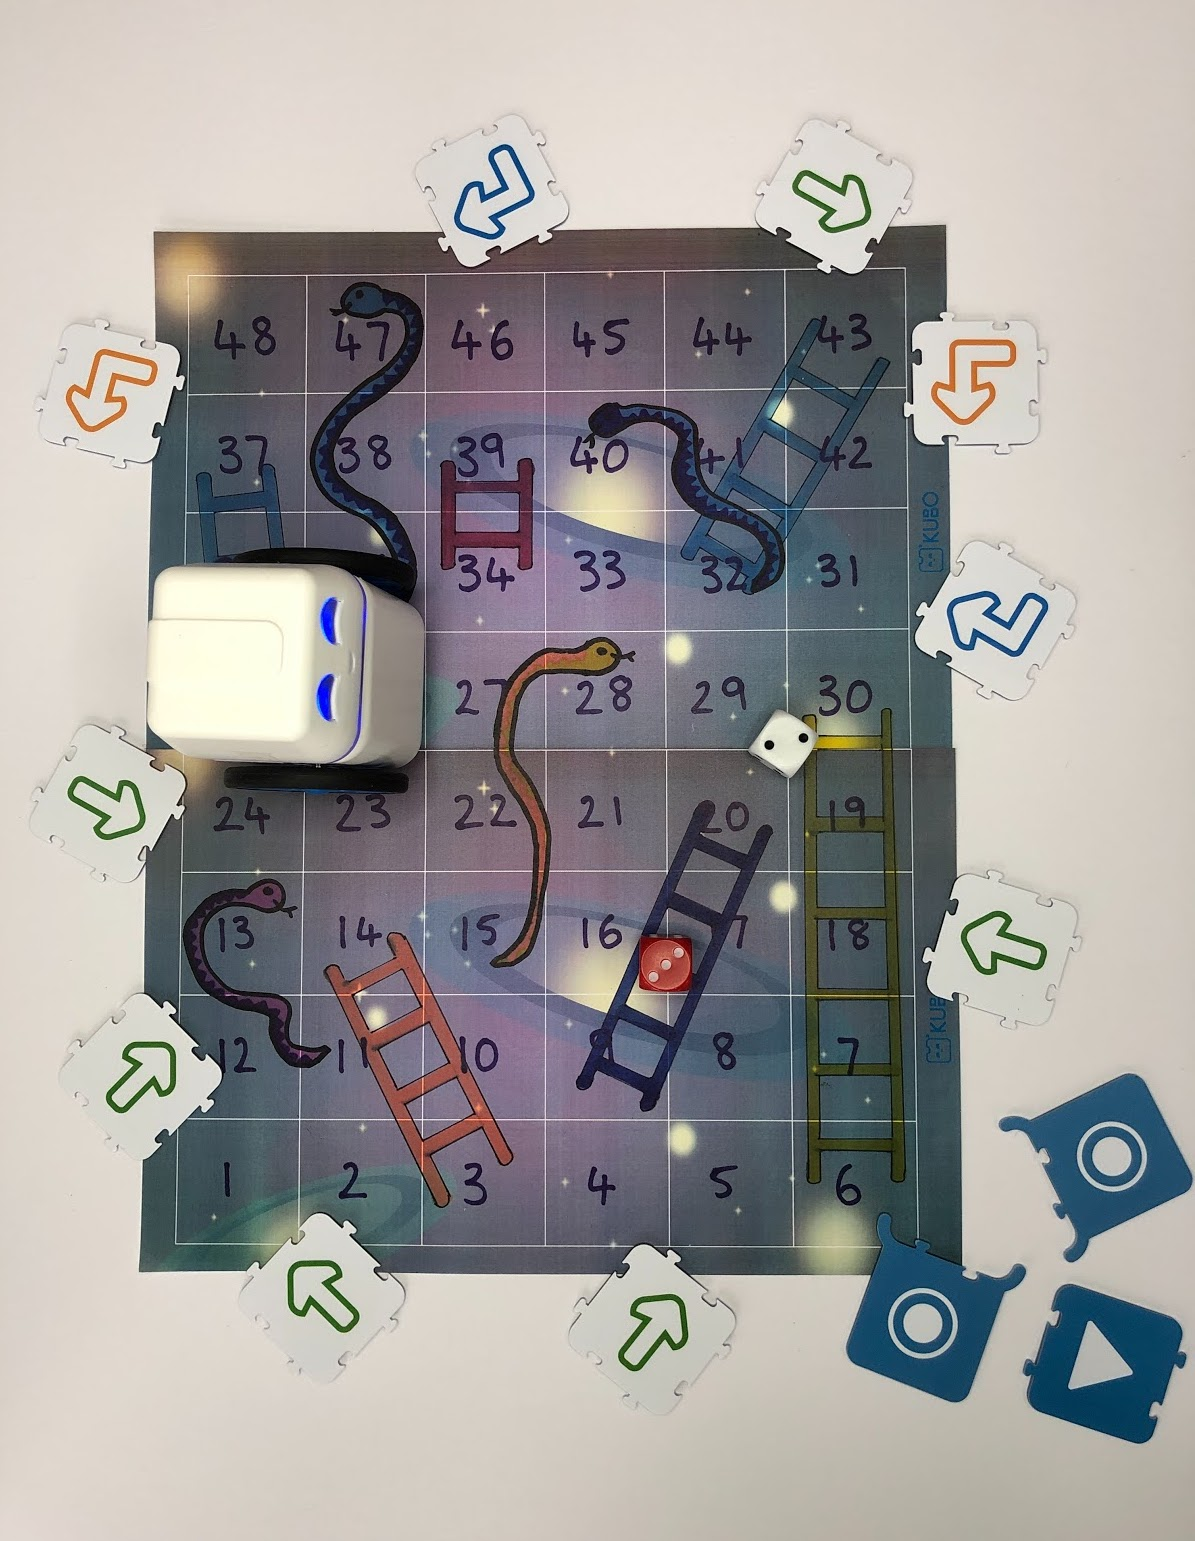 Snakes and ladders KUBO